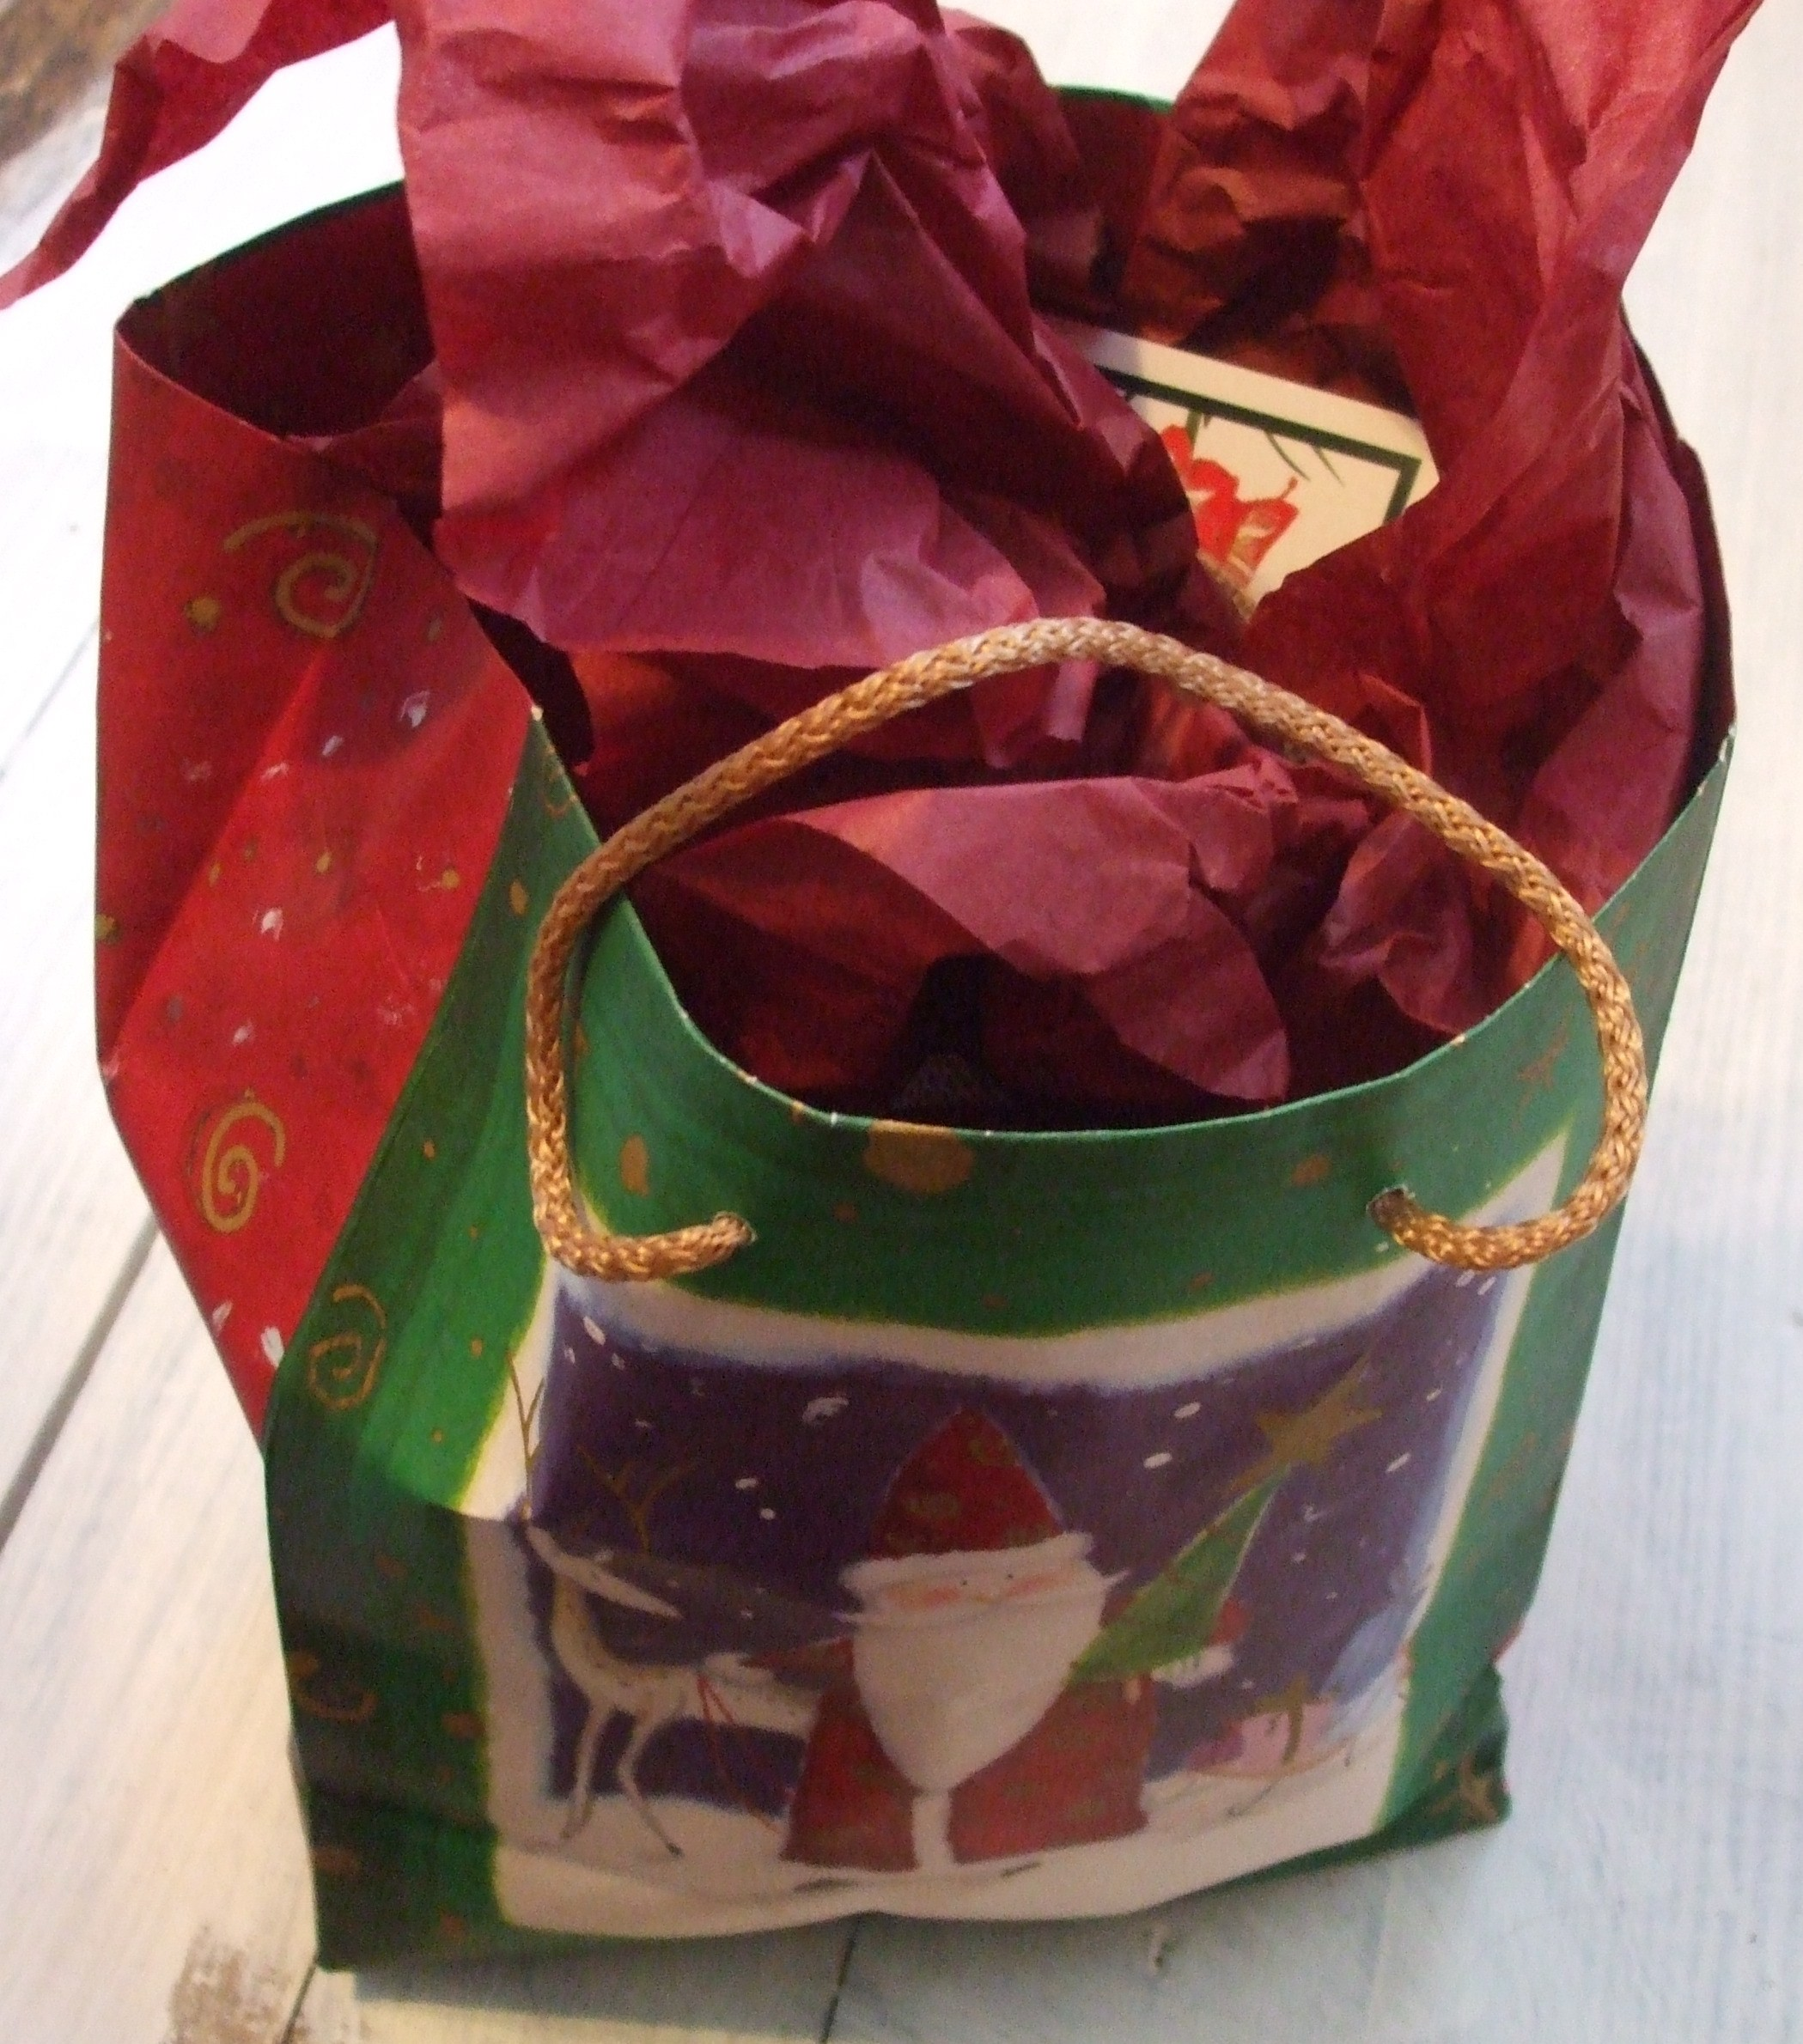 A gift bag with red and green decorations and red tissue paper.